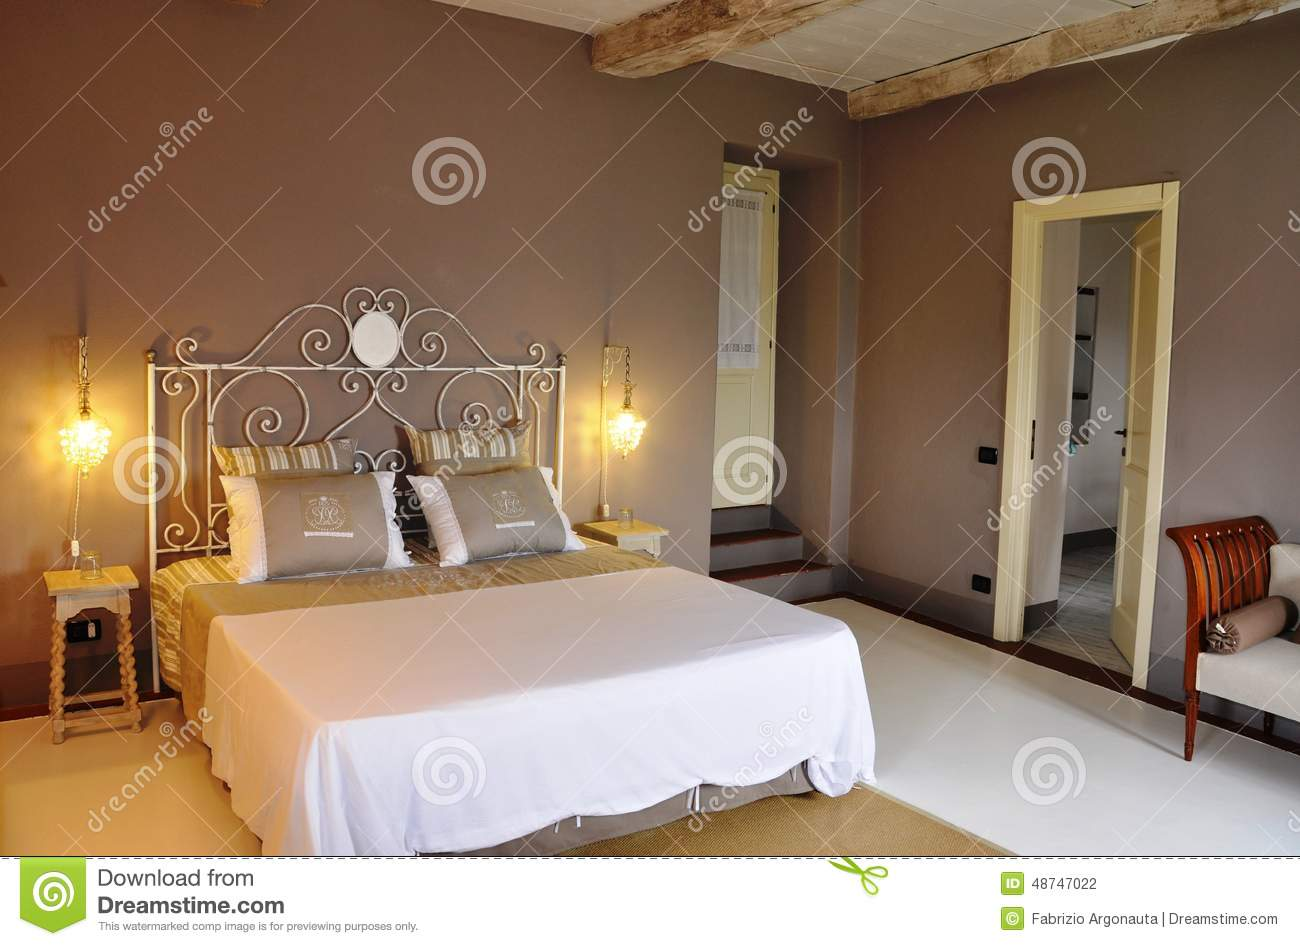 chambre coucher de style campagnard photo stock image